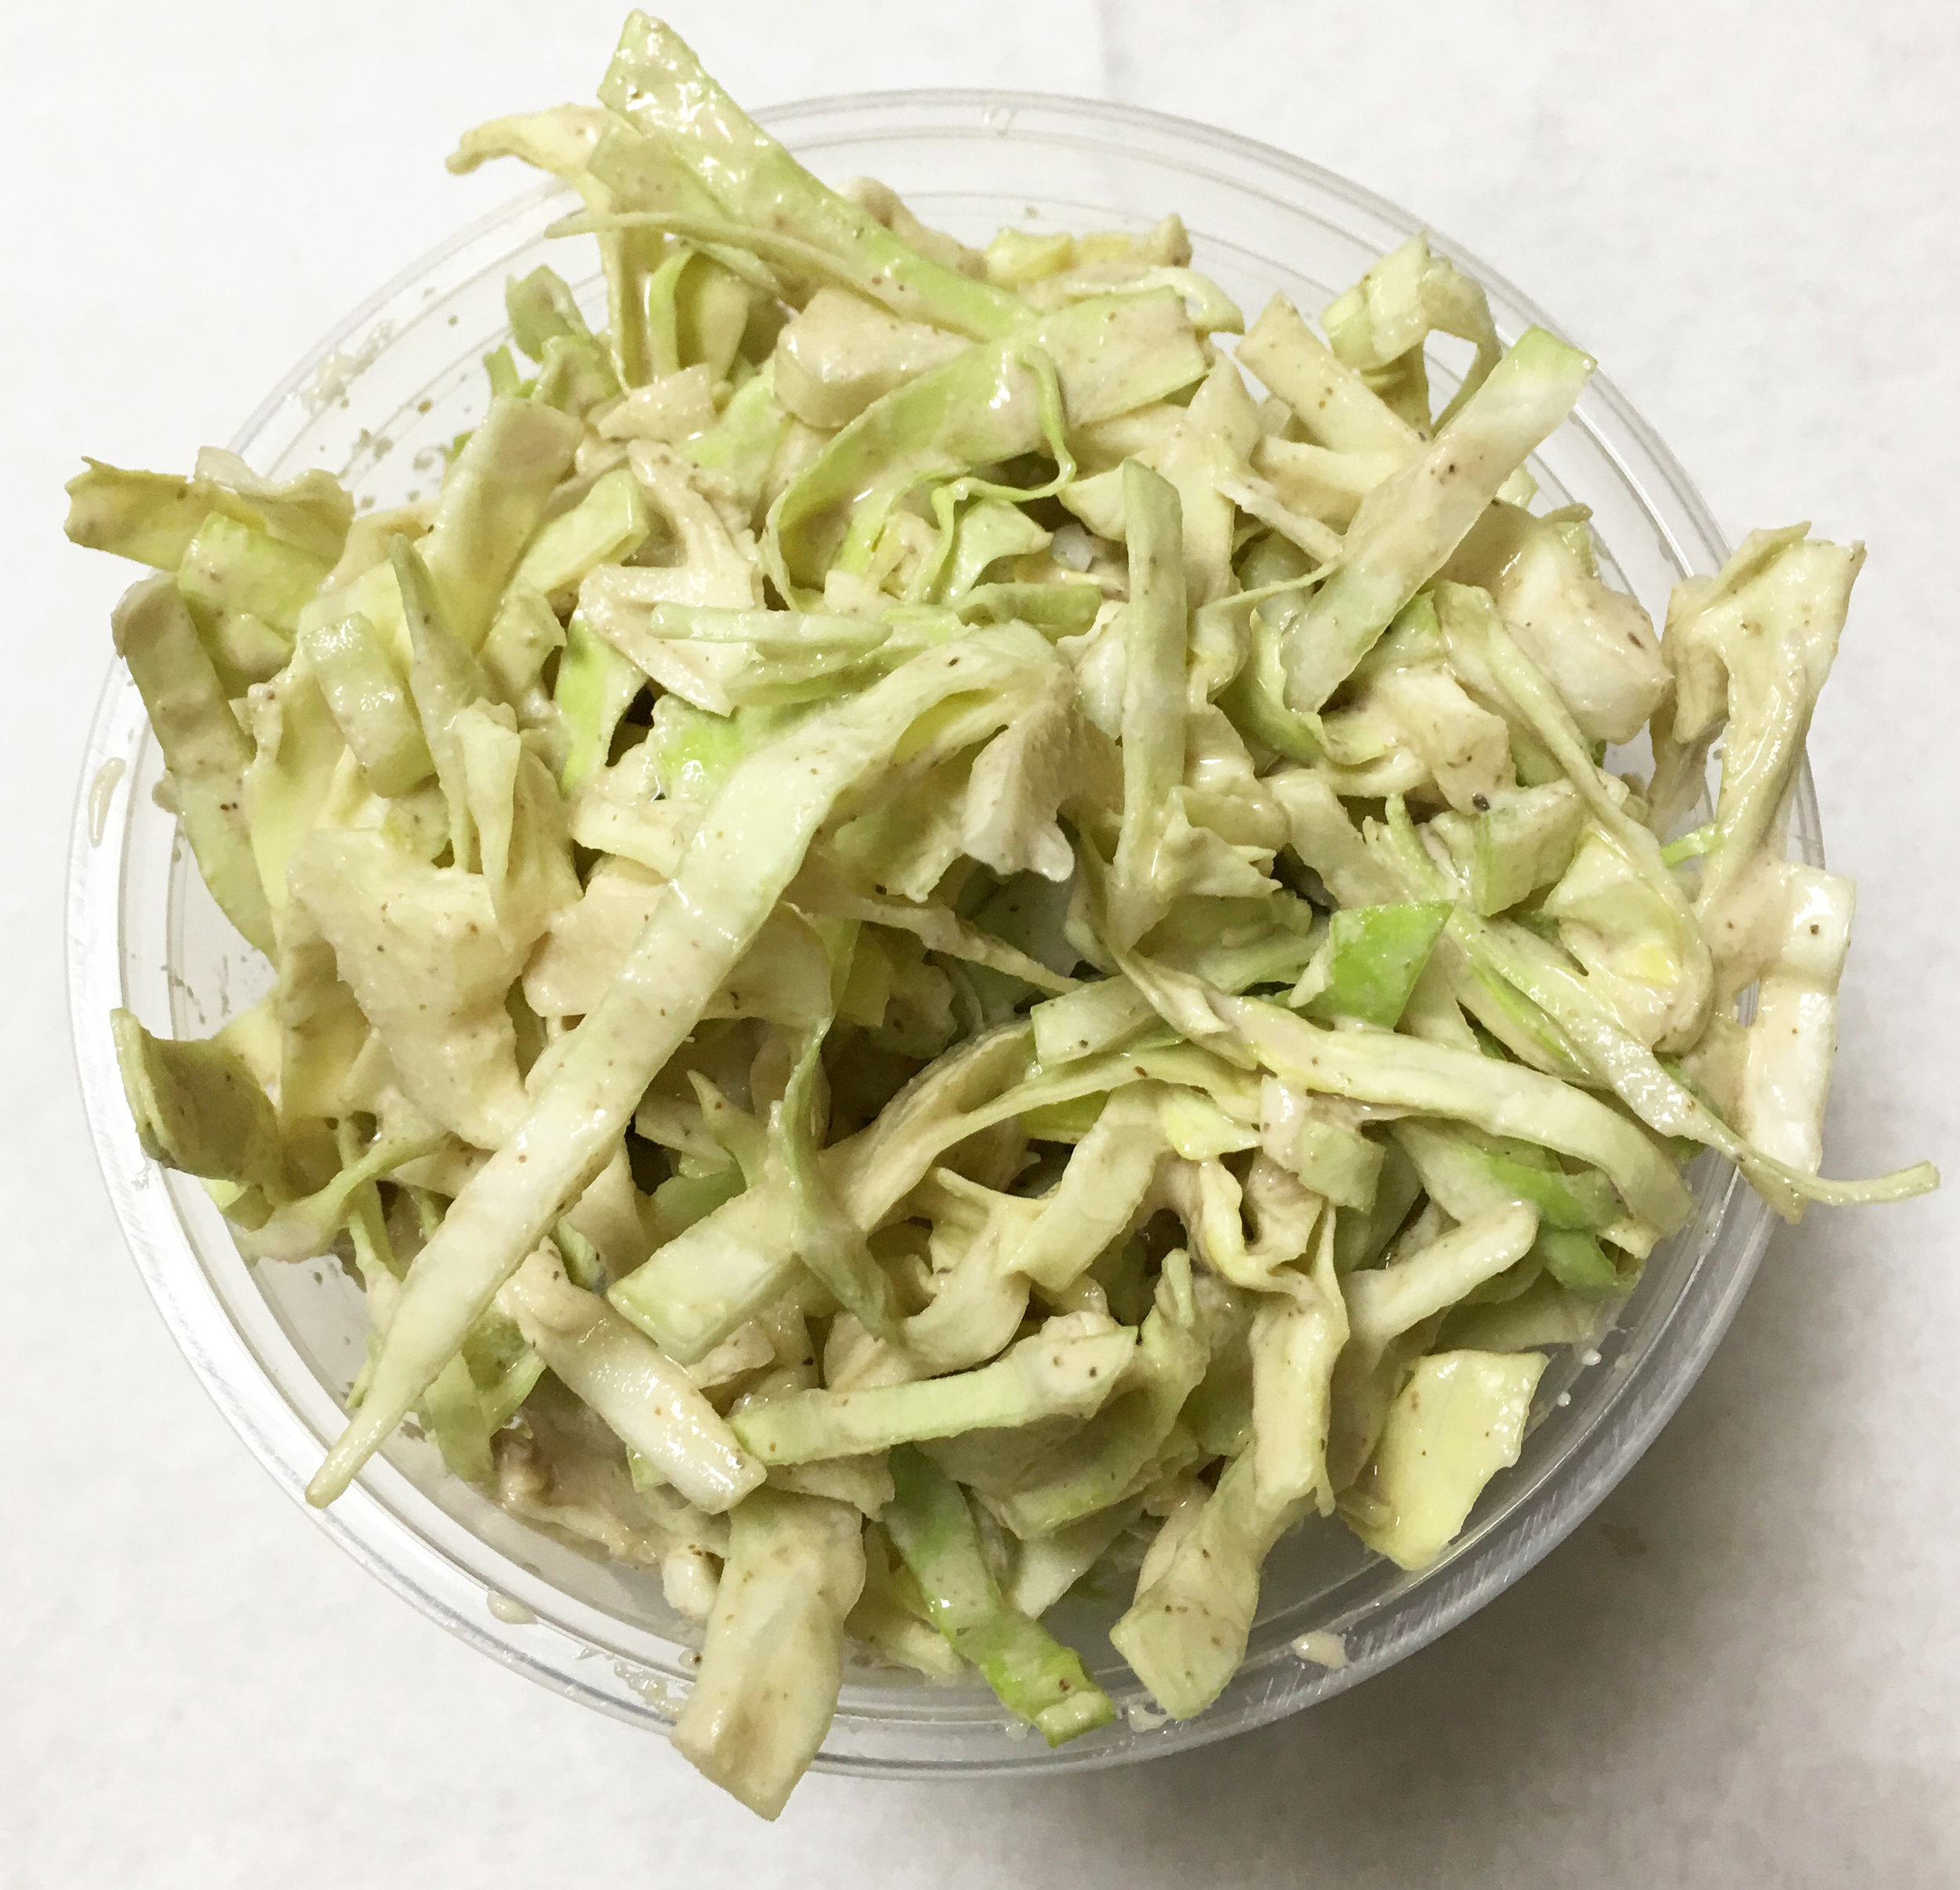 Green cabbage and celery coleslaw with a creamy walnut dressing.